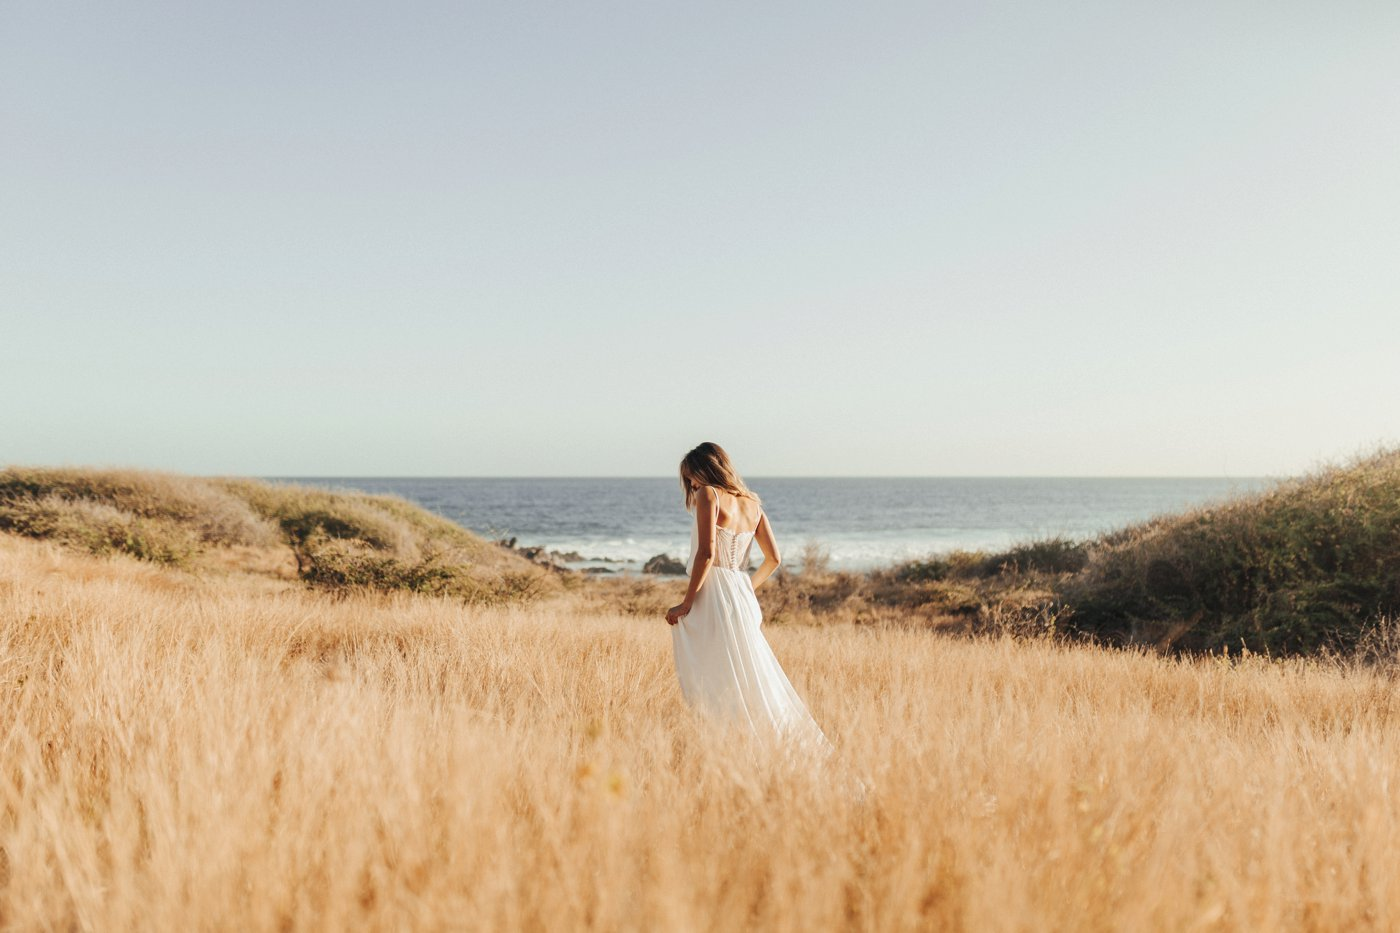 Barefoot bride – Elodie Nirlo Wedding Dress